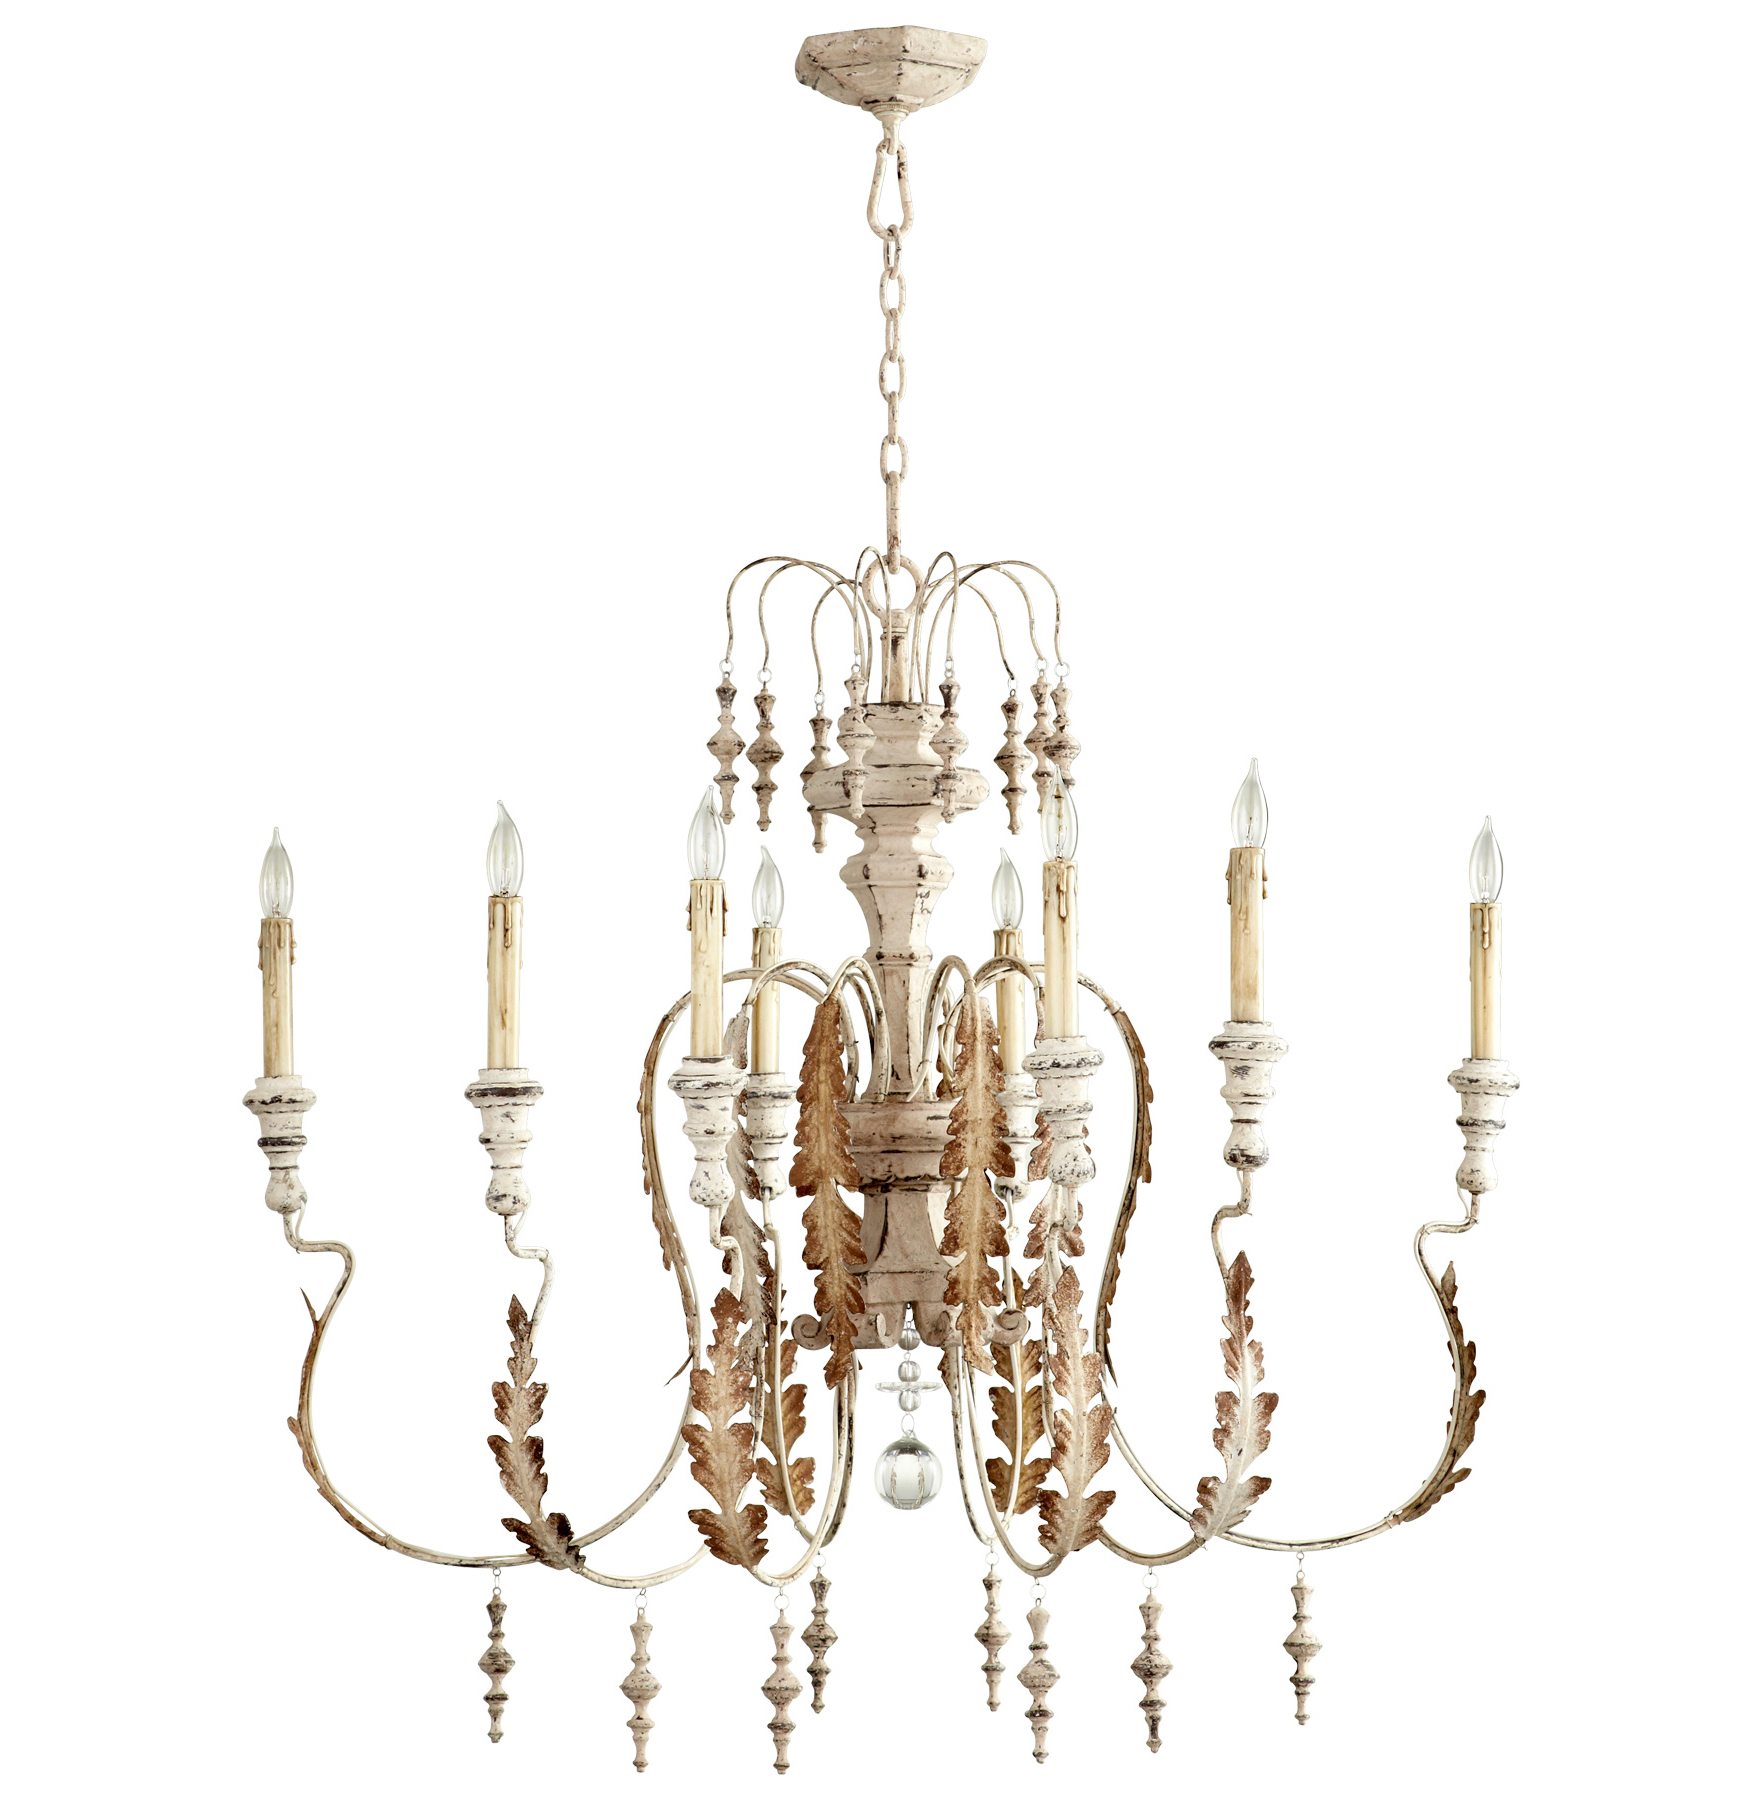 original signed pictures chandeliers lights creators at venini chandelier glass polyhedral z italy of carlo scarpa furniture for sale and lighting pendants pendant